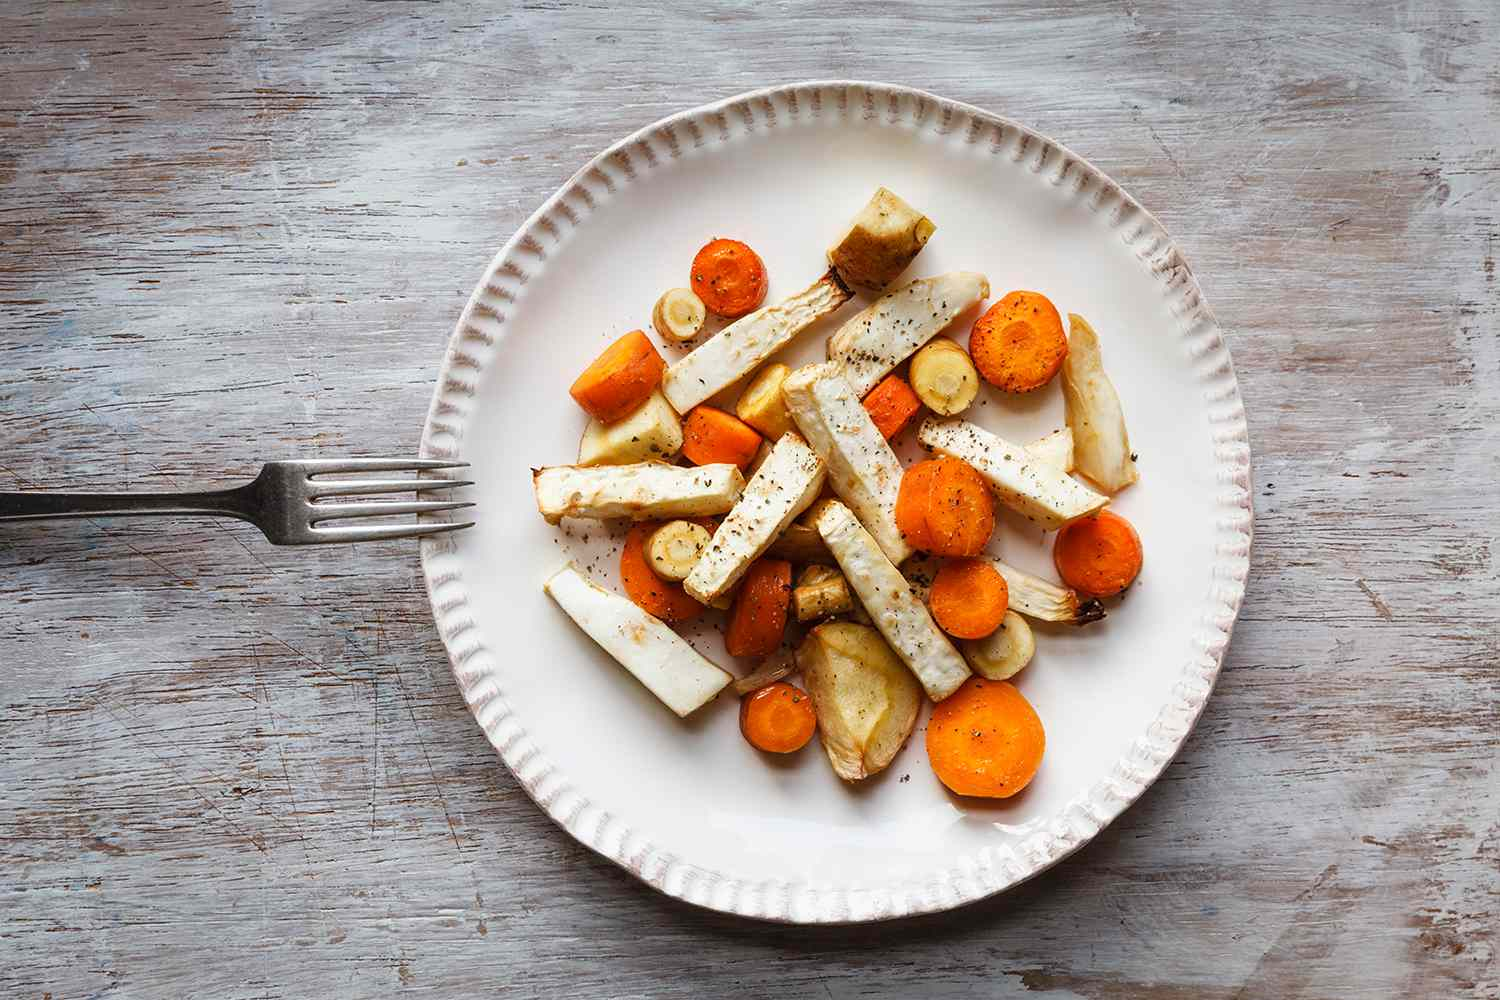 Roasted root vegetable, carrot, parsnip and celeriac